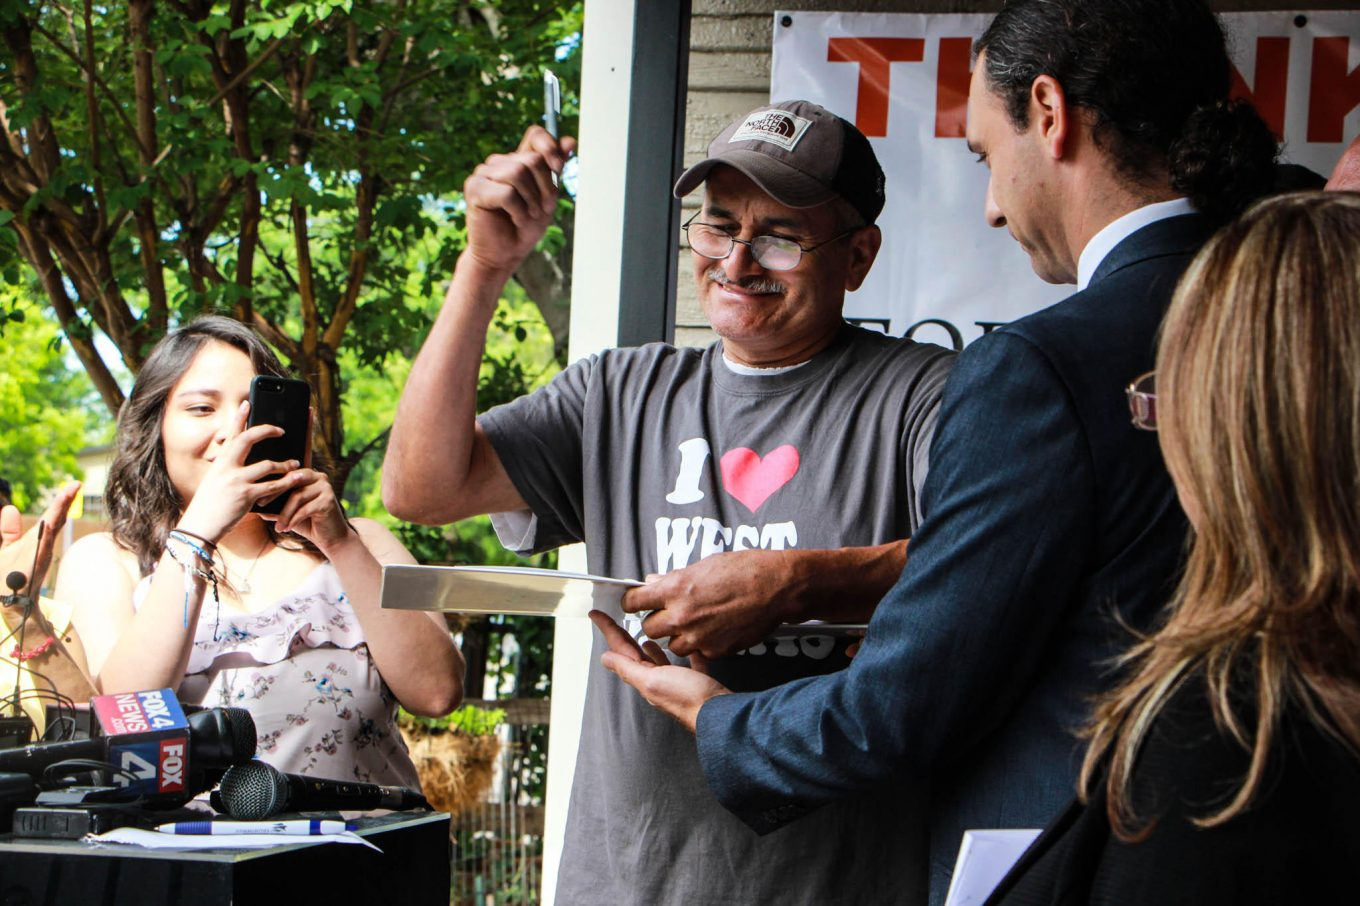 Merced Correa is a longtime renter who appeared at a news conference on Monday to celebrate the house he's about to buy in West Dallas. Photo/Jessica Diaz-Hurtado